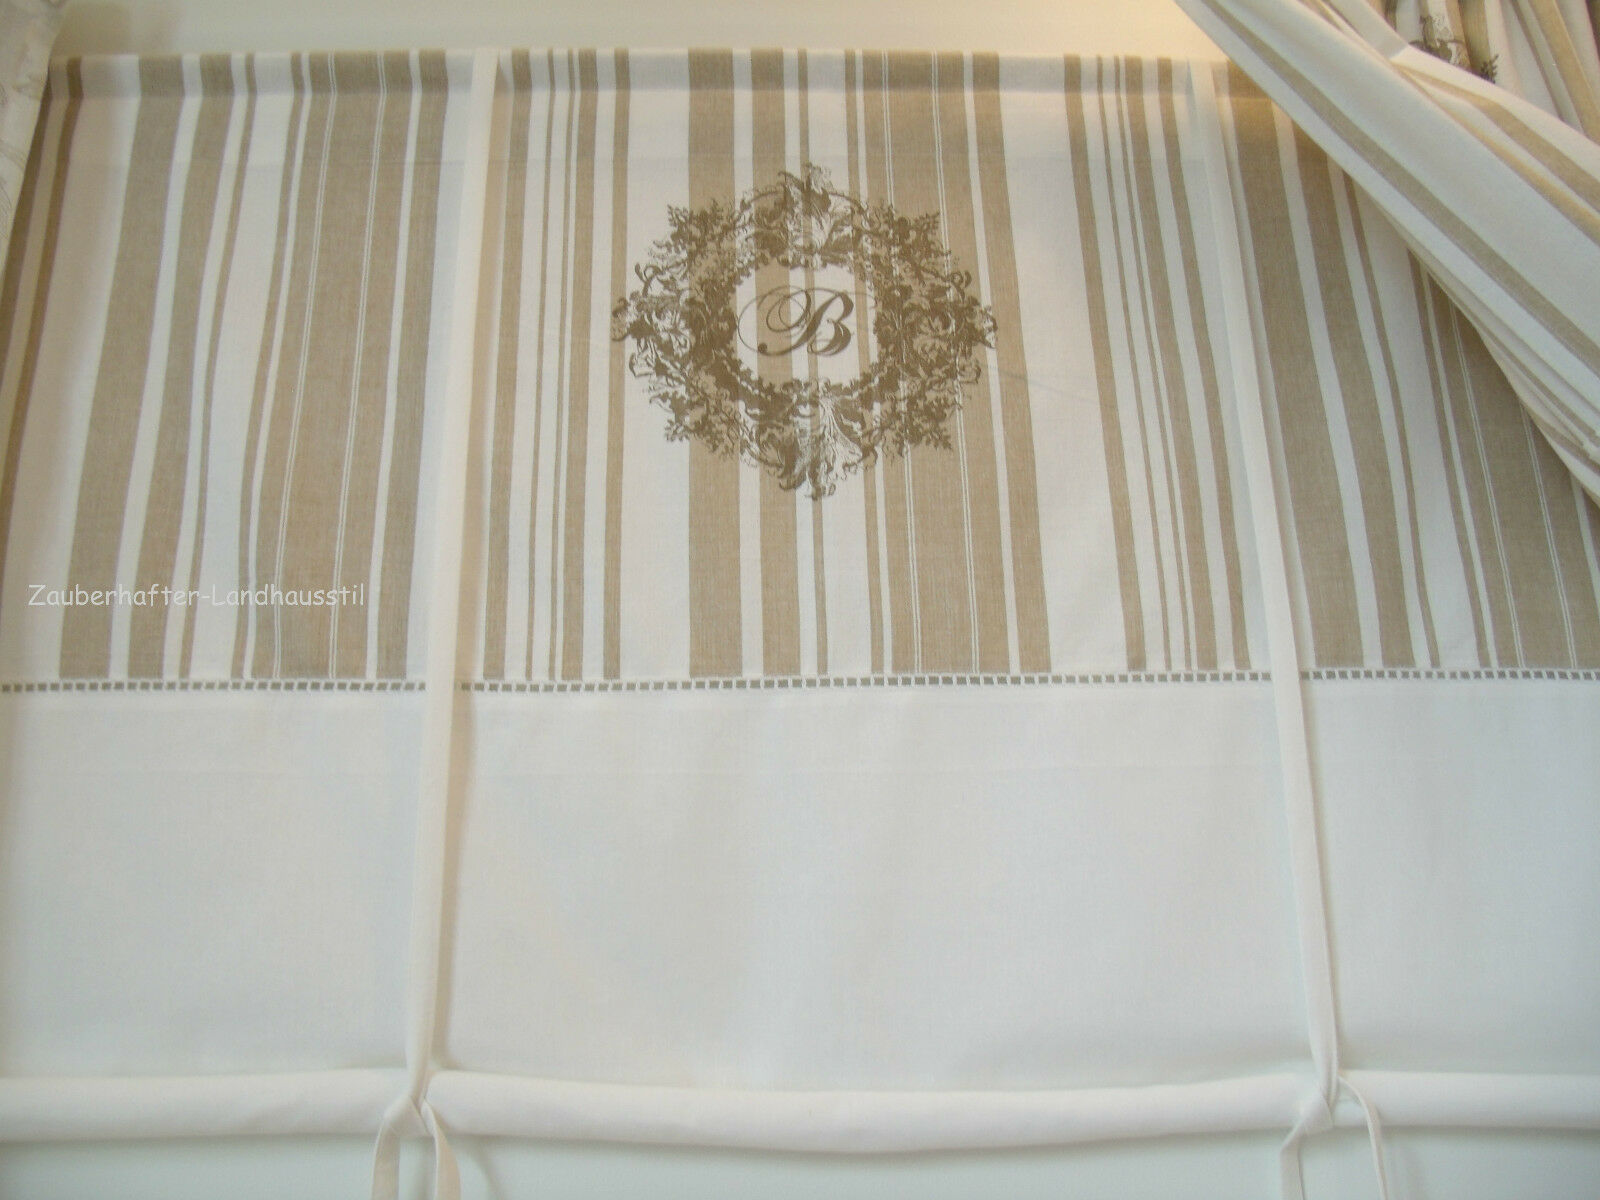 beatrice deko raff gardine 140x100 shabby vintage curtain. Black Bedroom Furniture Sets. Home Design Ideas